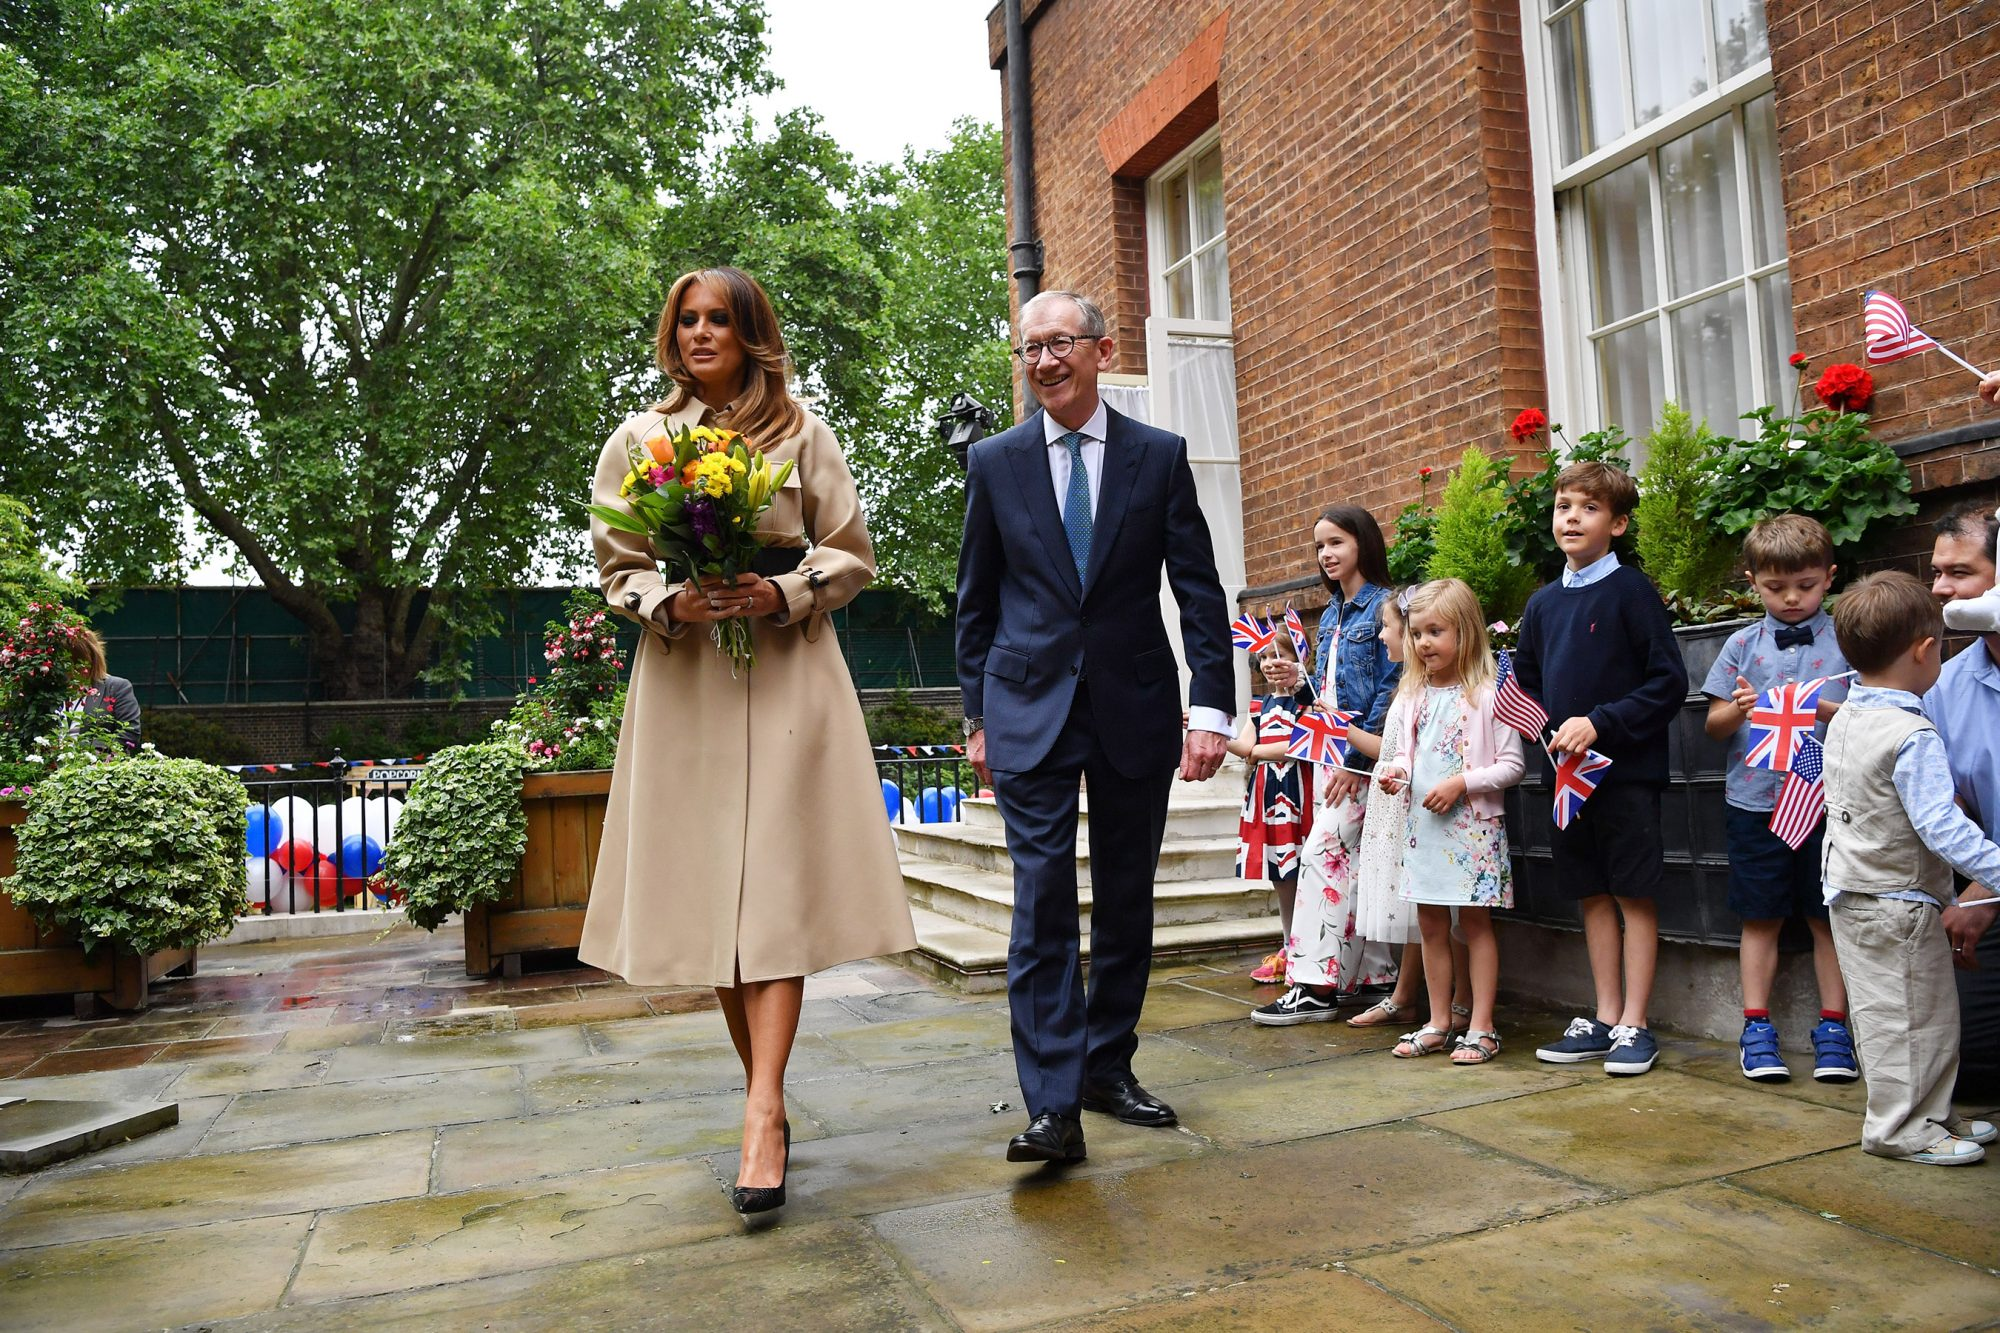 First Lady Melania Trump (L) and Philip May (R), husband of Britain's Prime Minister Theresa May